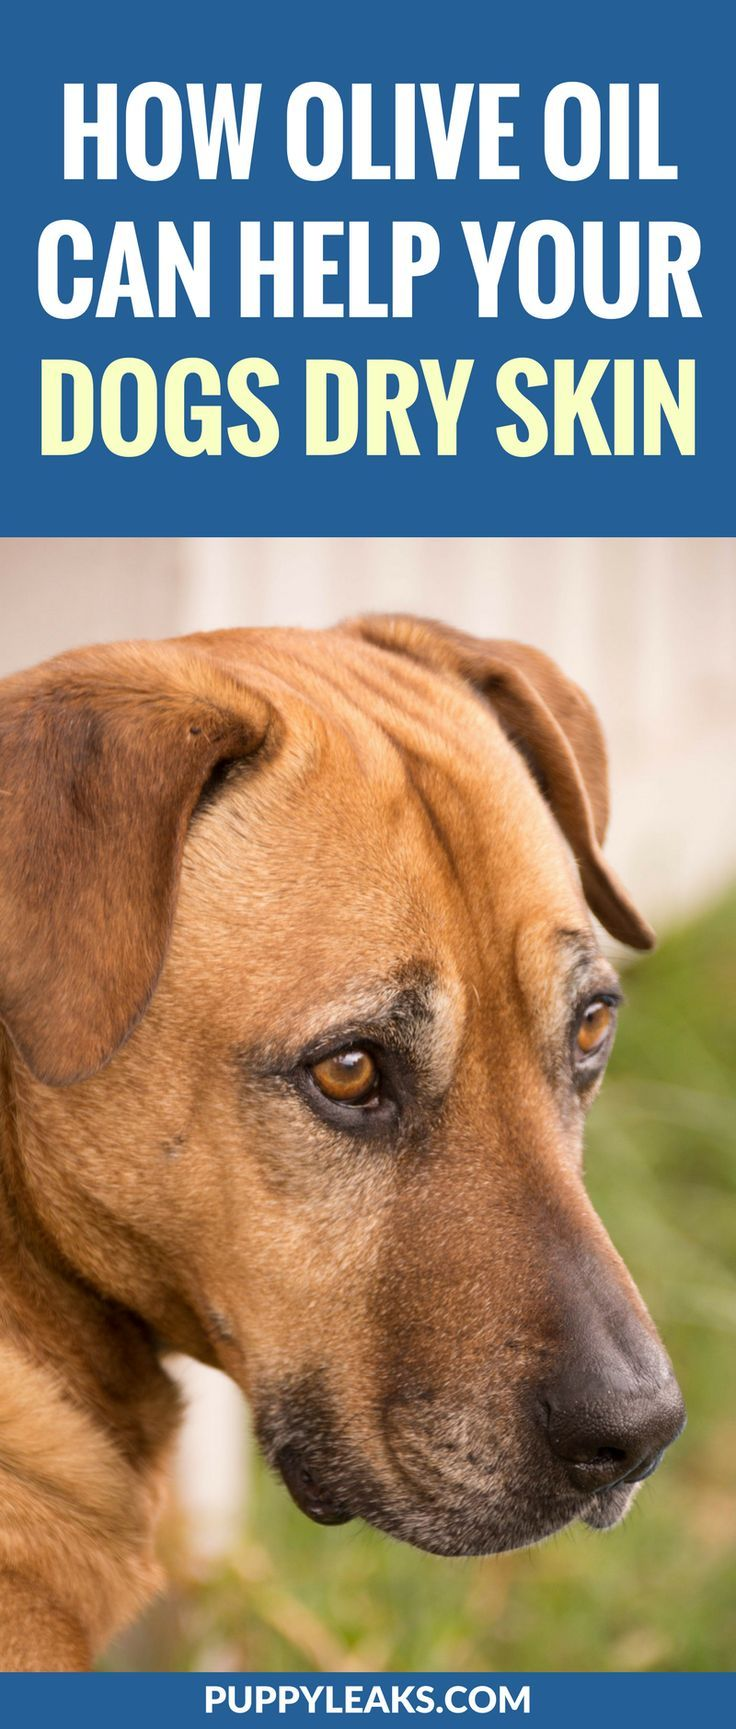 Benefits Of Adding Olive Oil To Dog Food